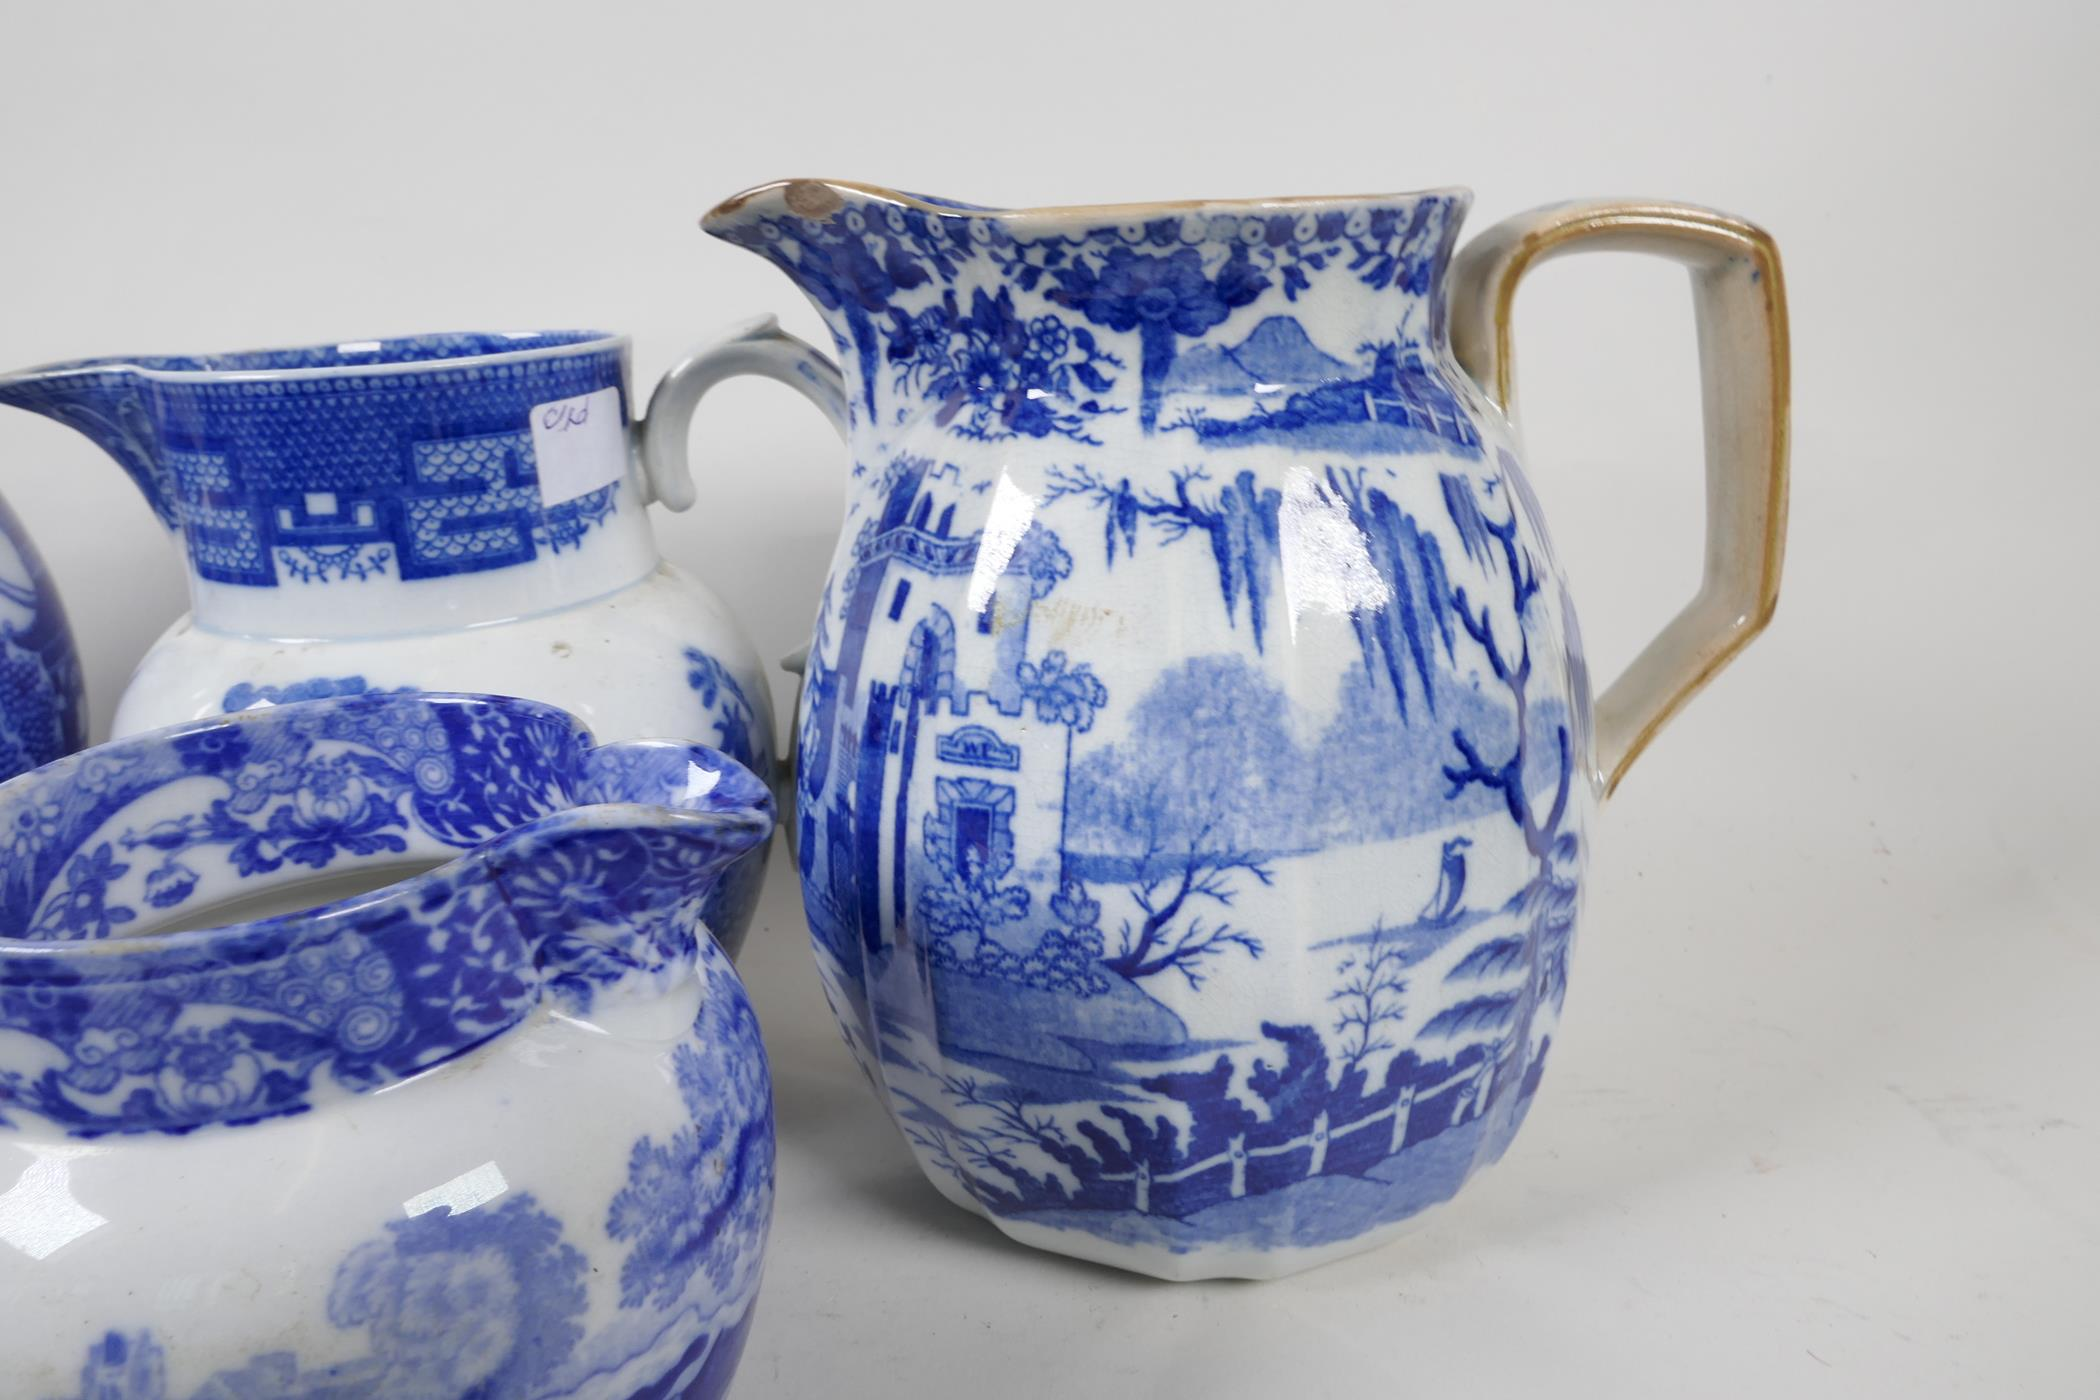 """Six blue and white transfer printed jugs and three gravy boats, various patterns, largest 6"""" high - Image 8 of 8"""